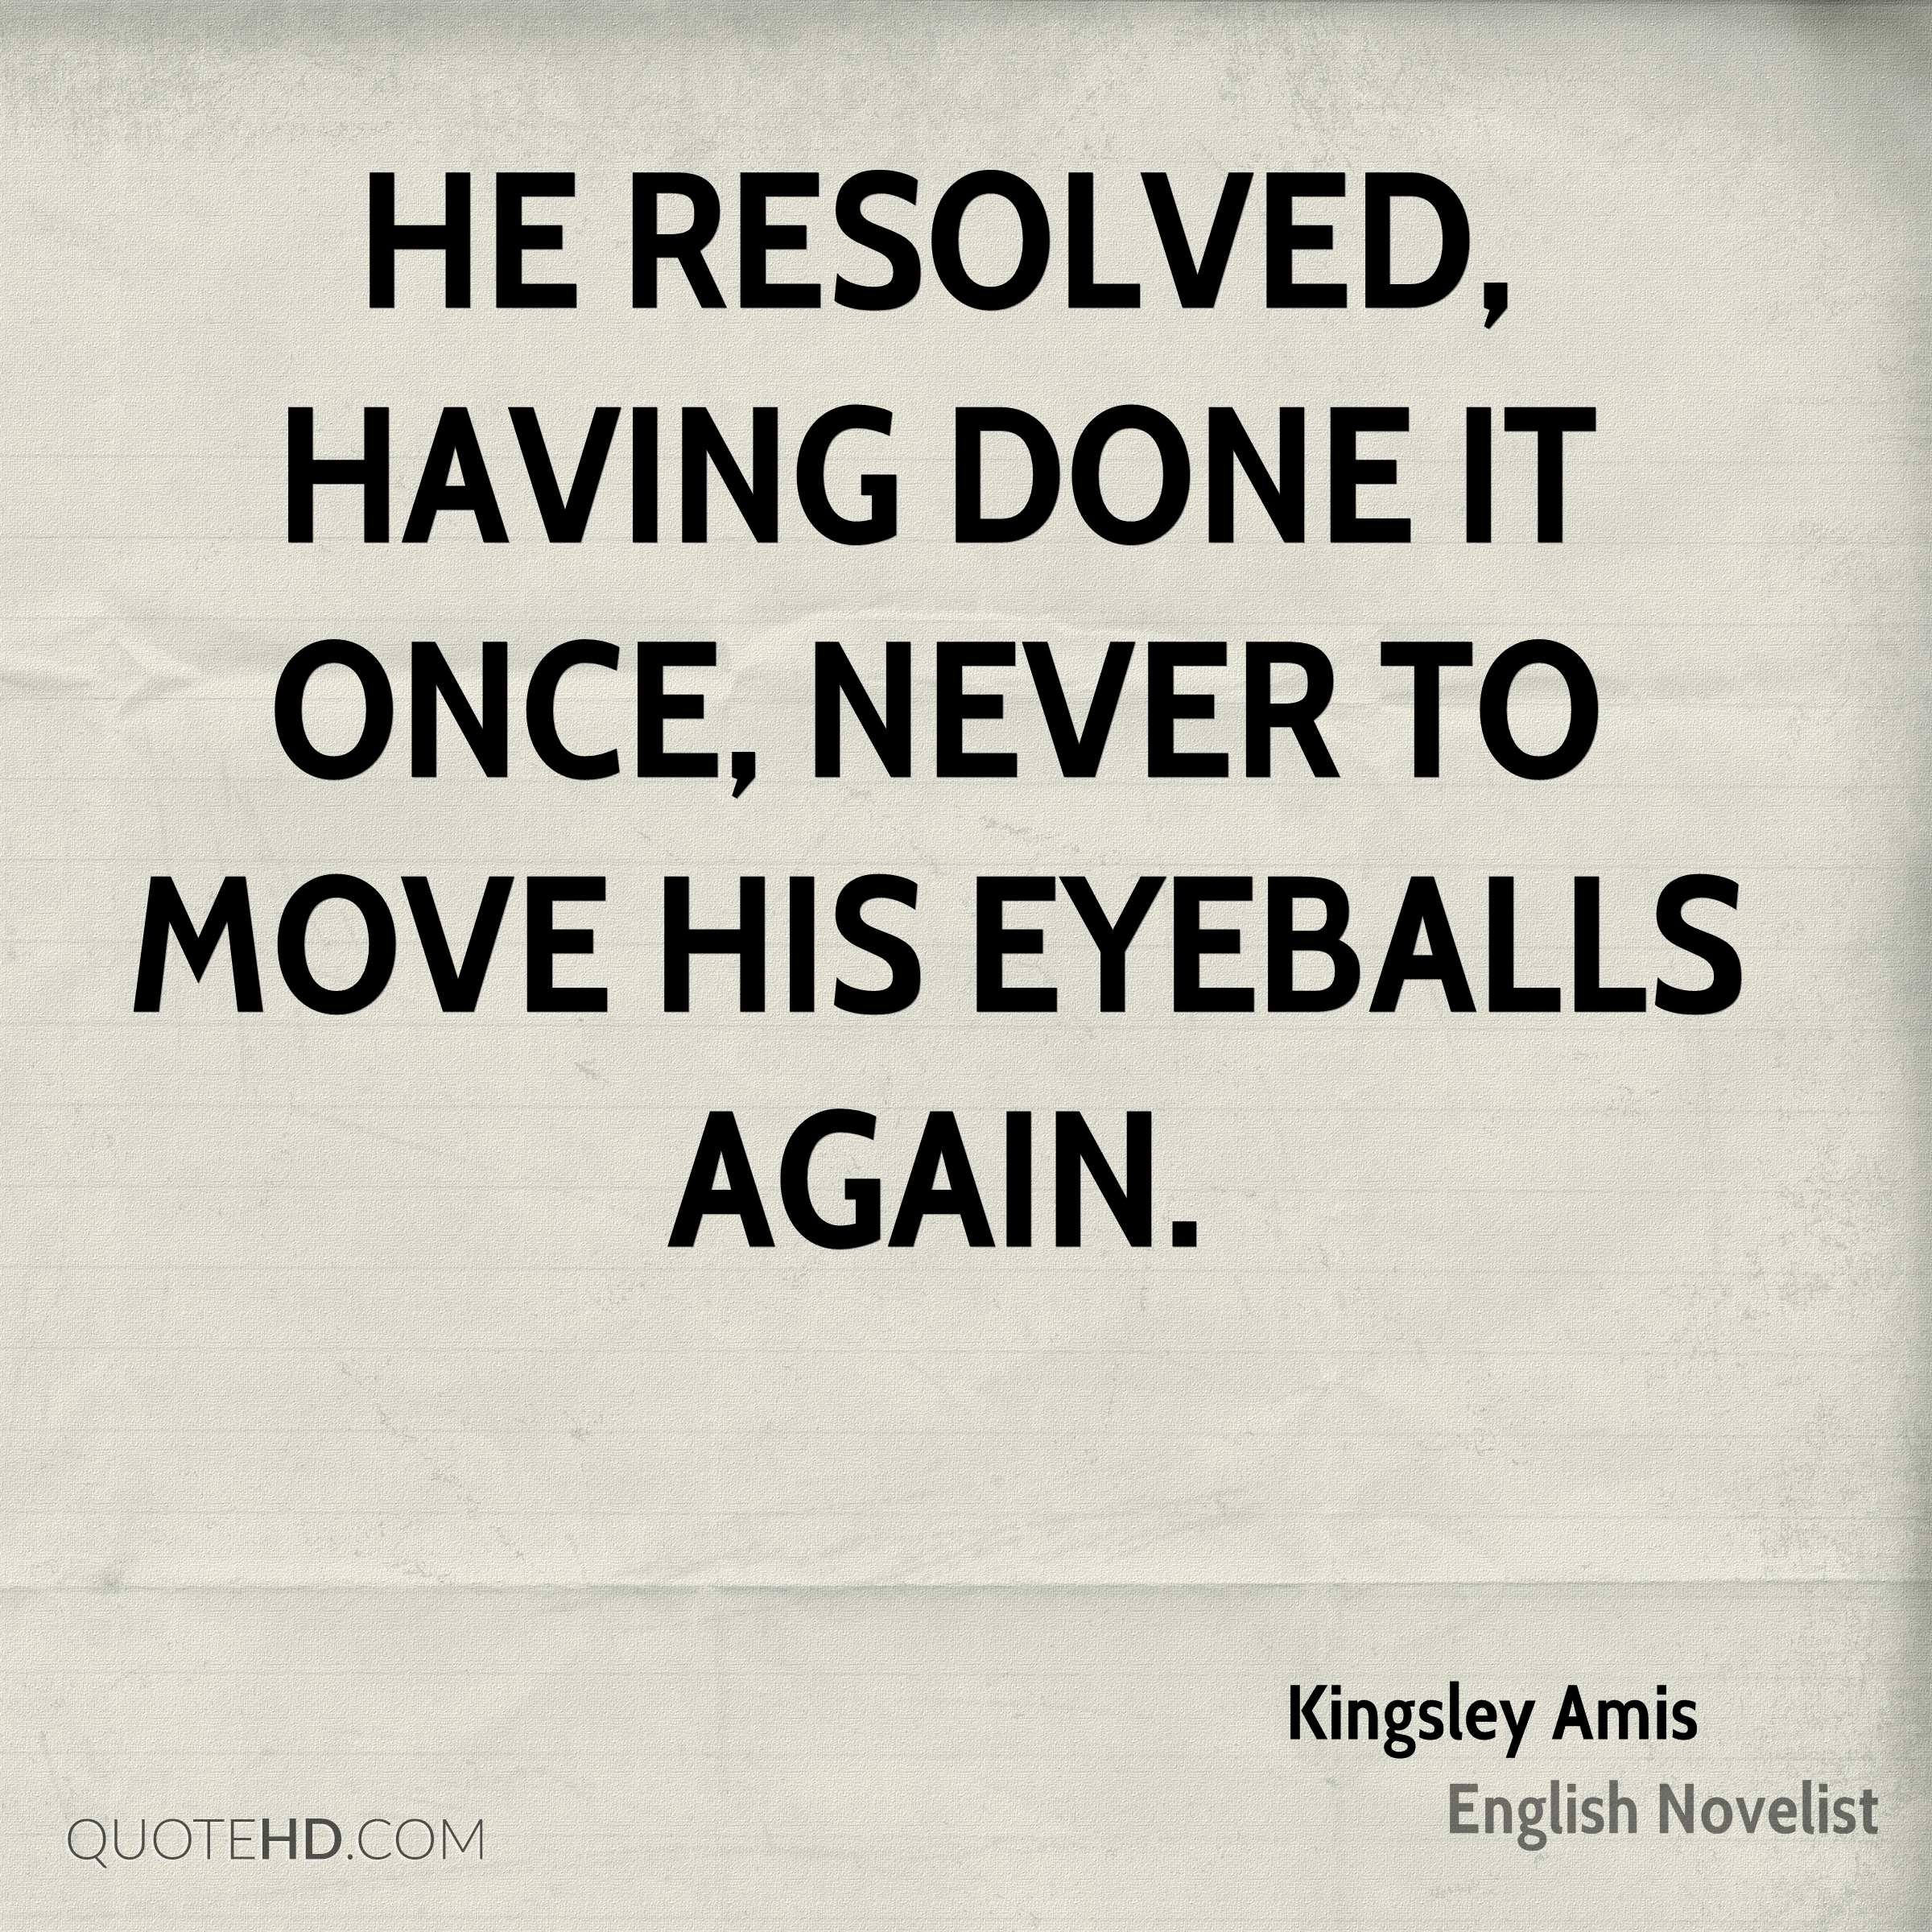 He resolved, having done it once, never to move his eyeballs again.